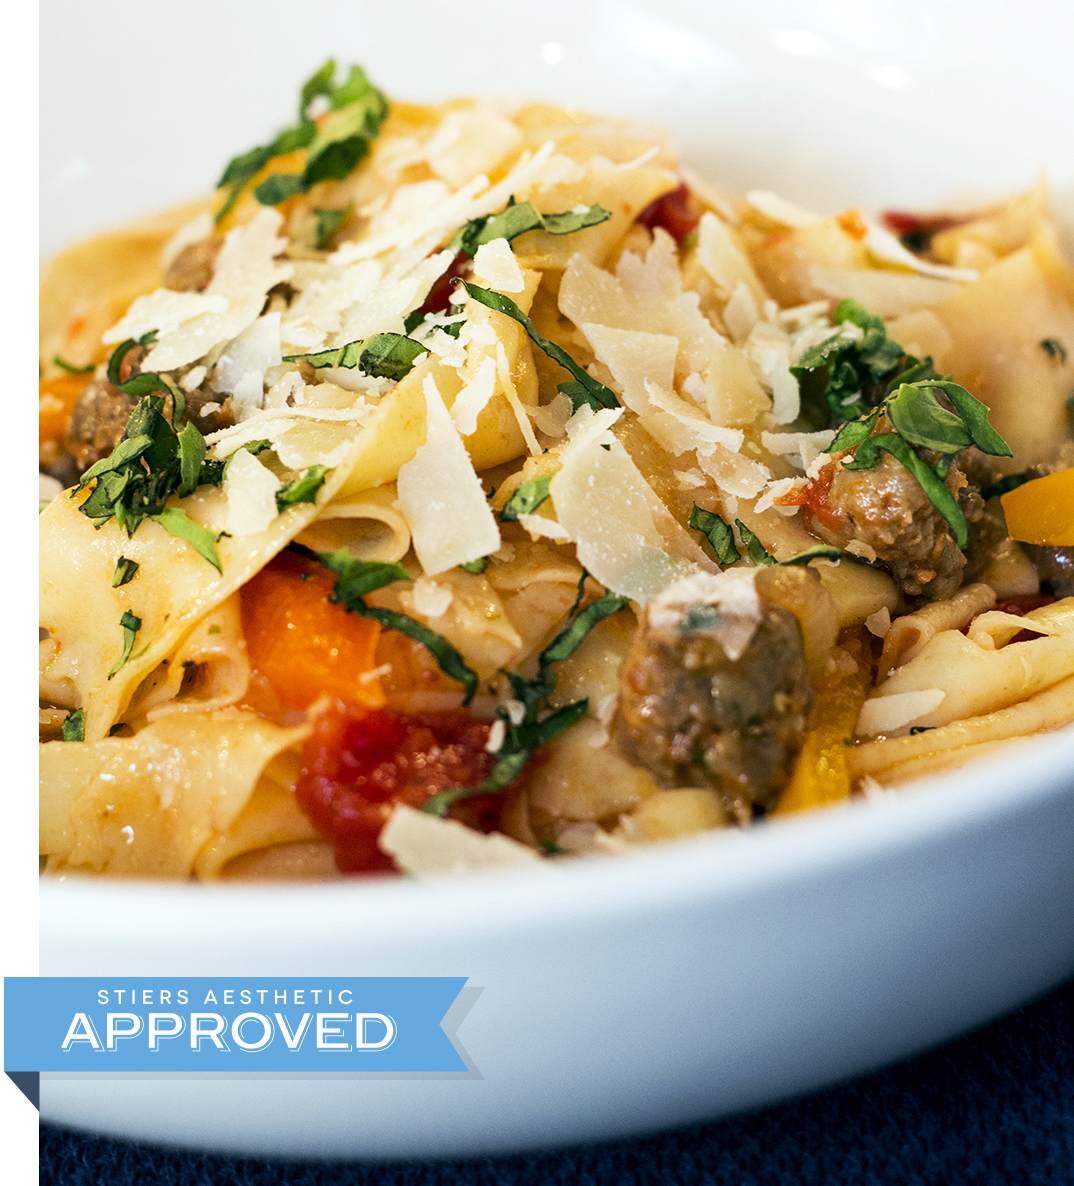 pasta_approved.jpg